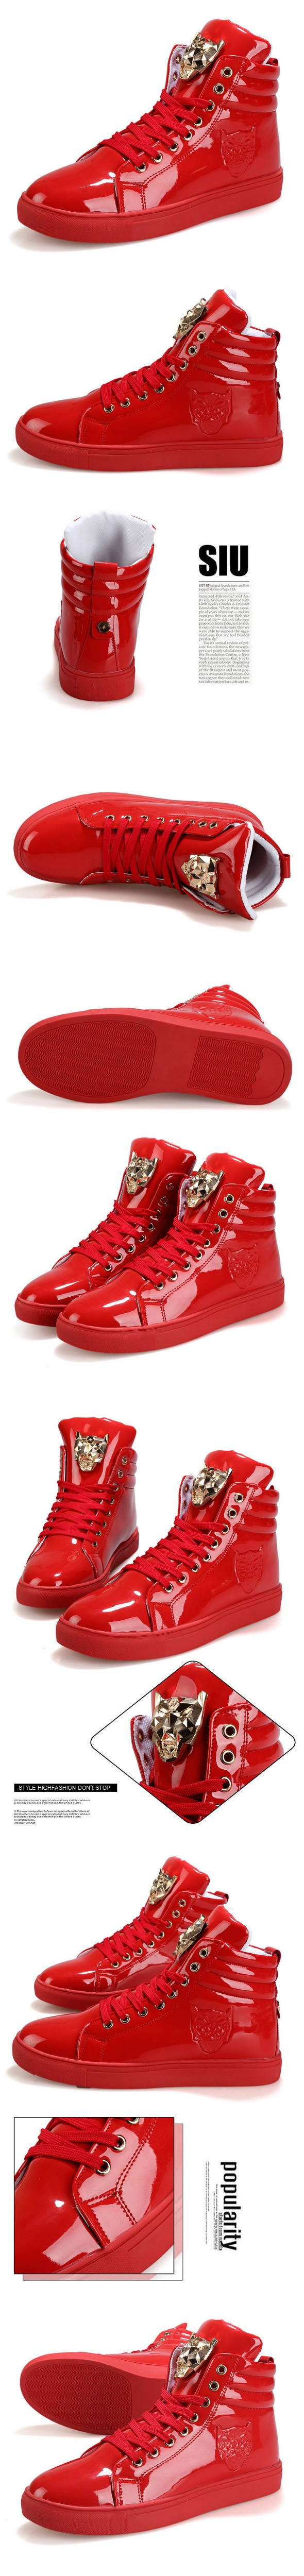 China top shoes Suppliers